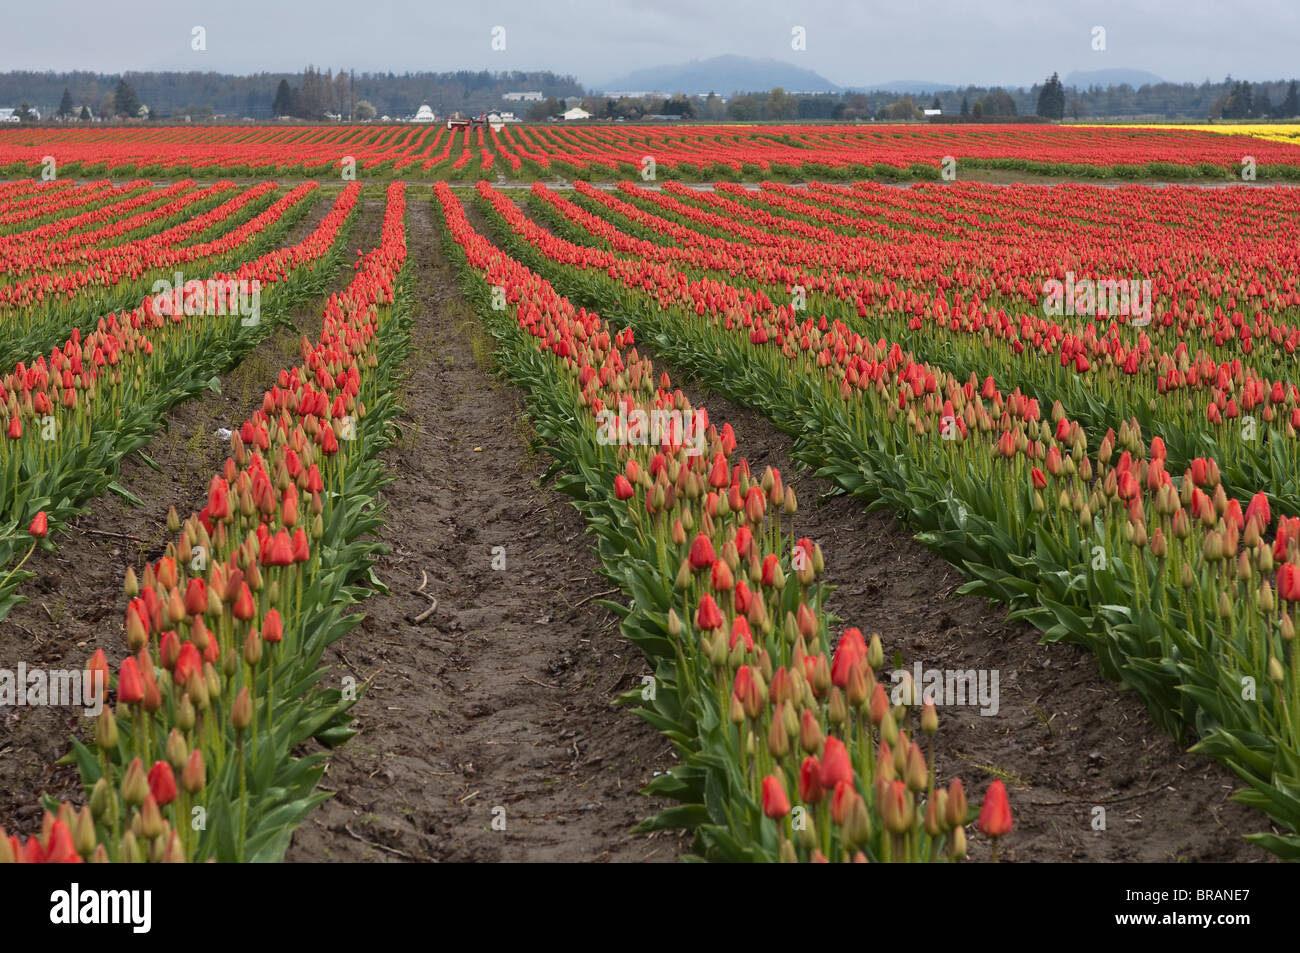 Tulips in the Skagit Valley, Washington State, United States of ...